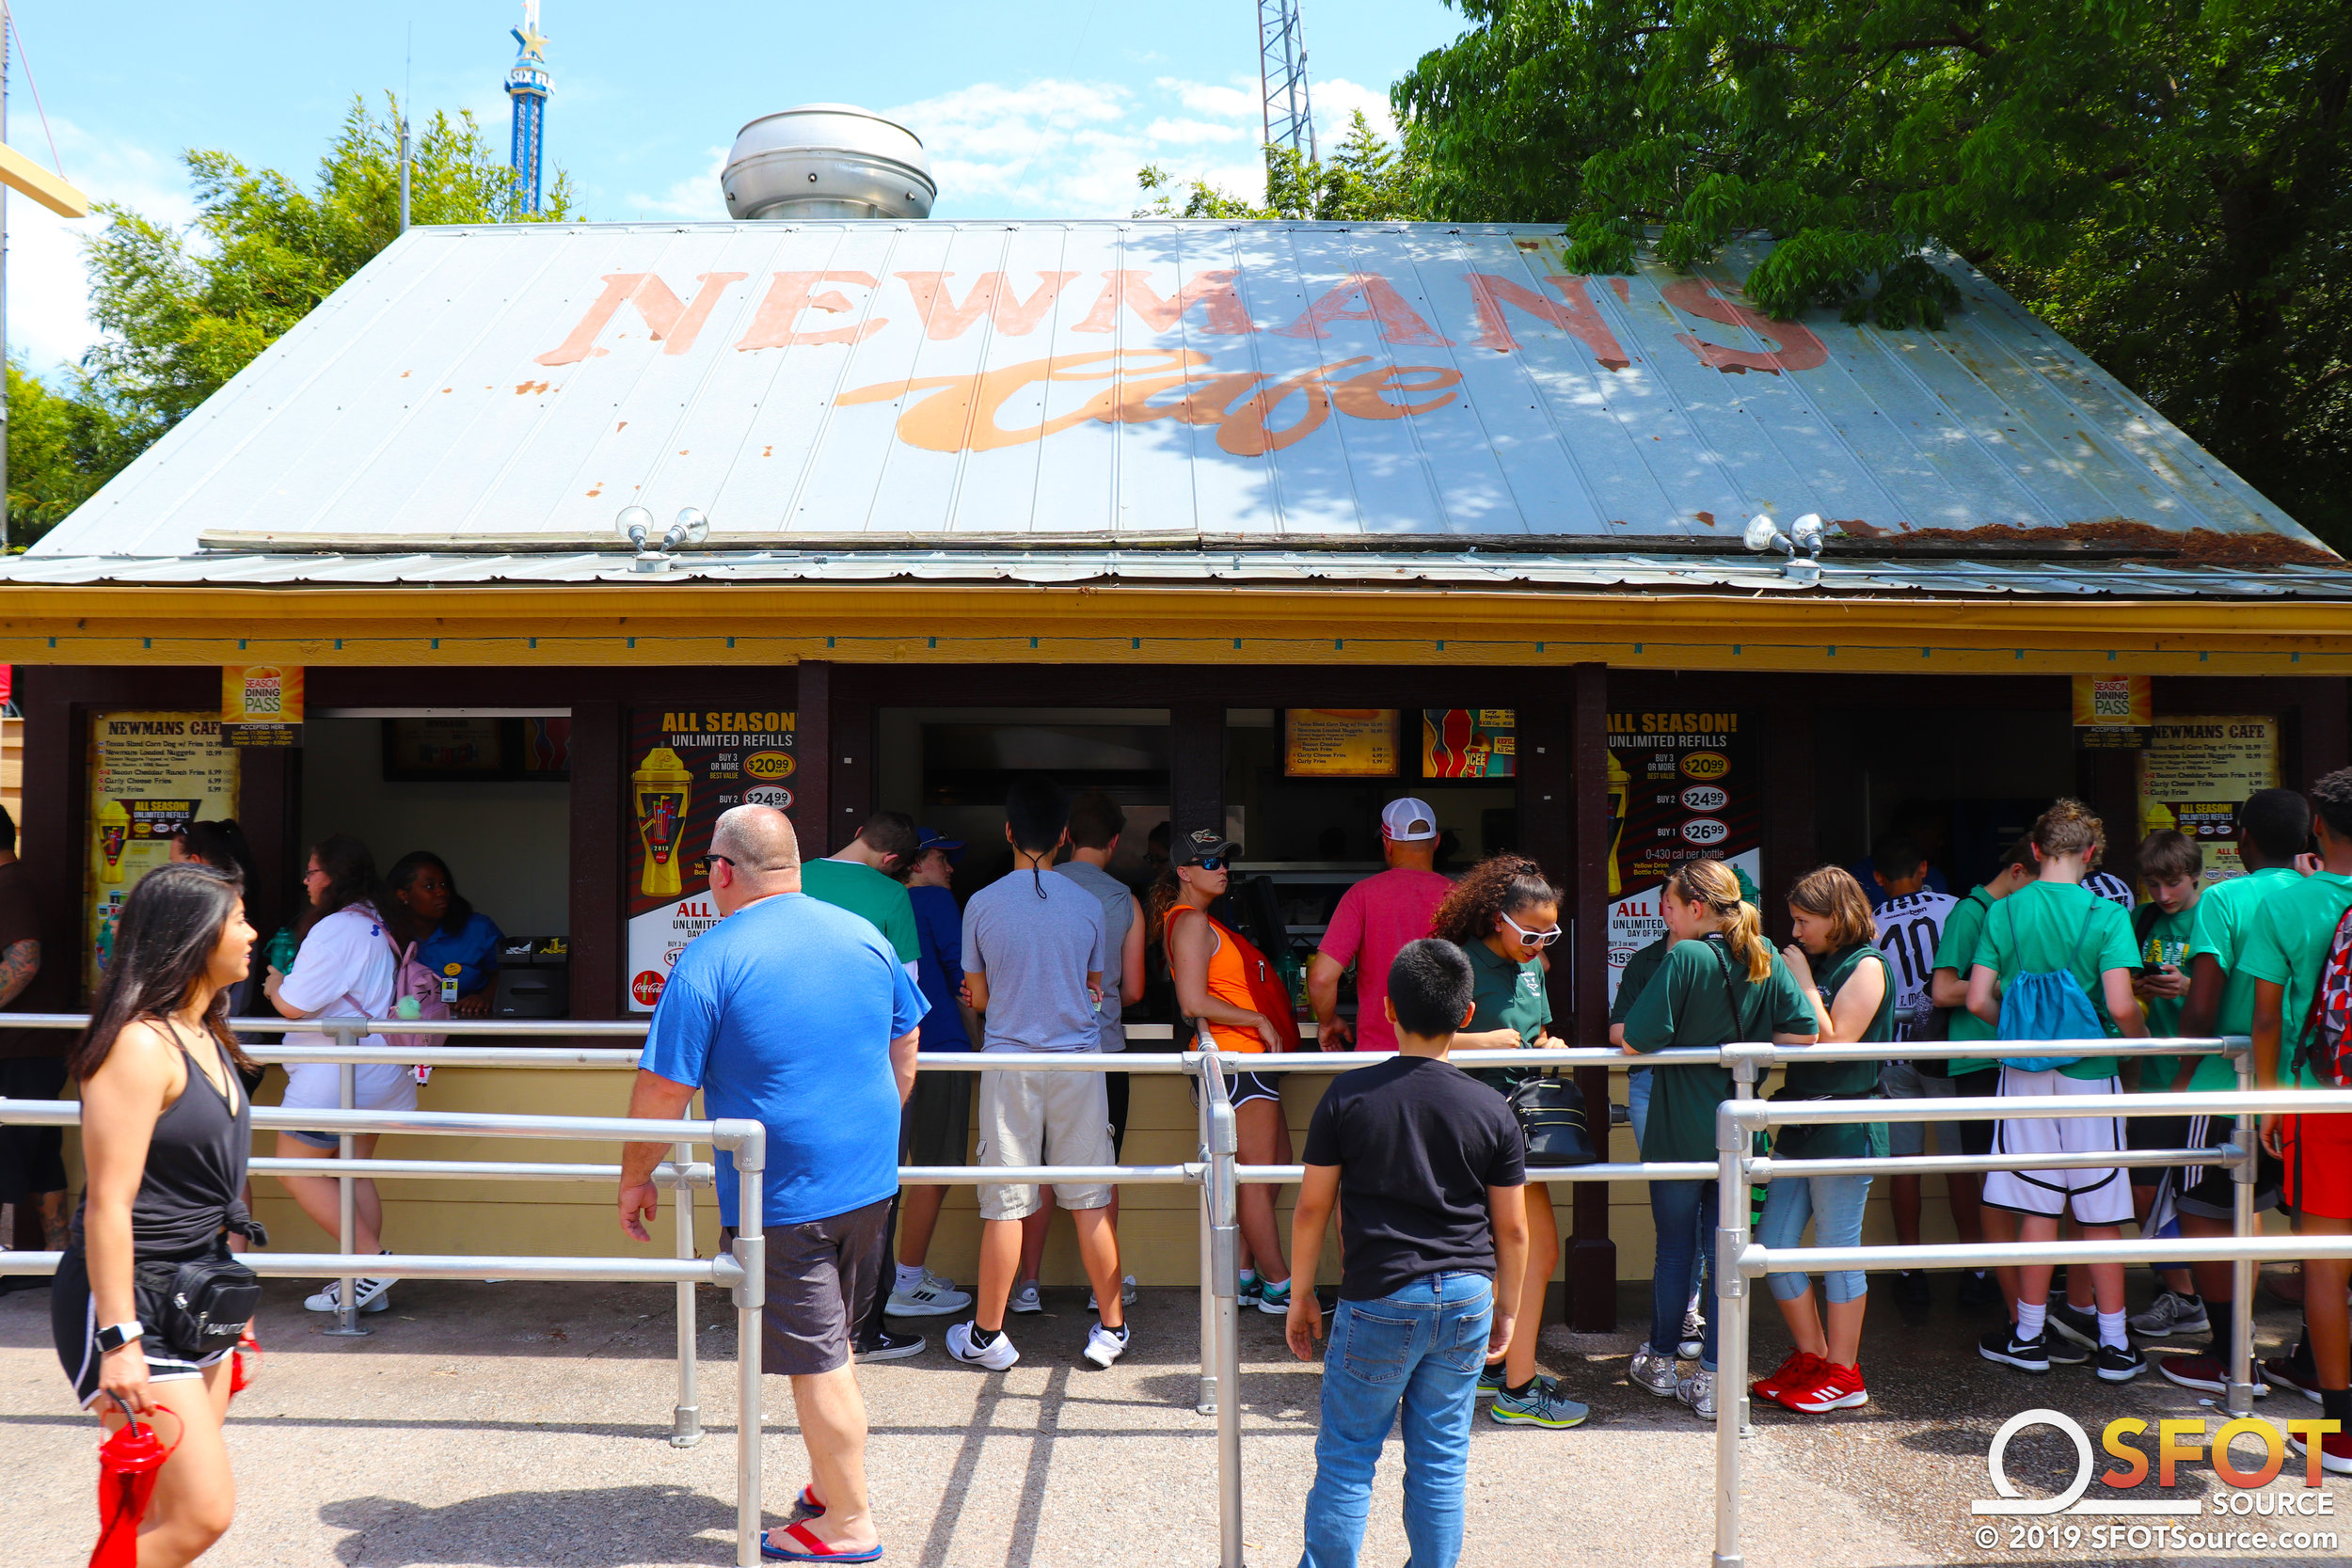 Newman's Cafe features multiple Dining Pass options.